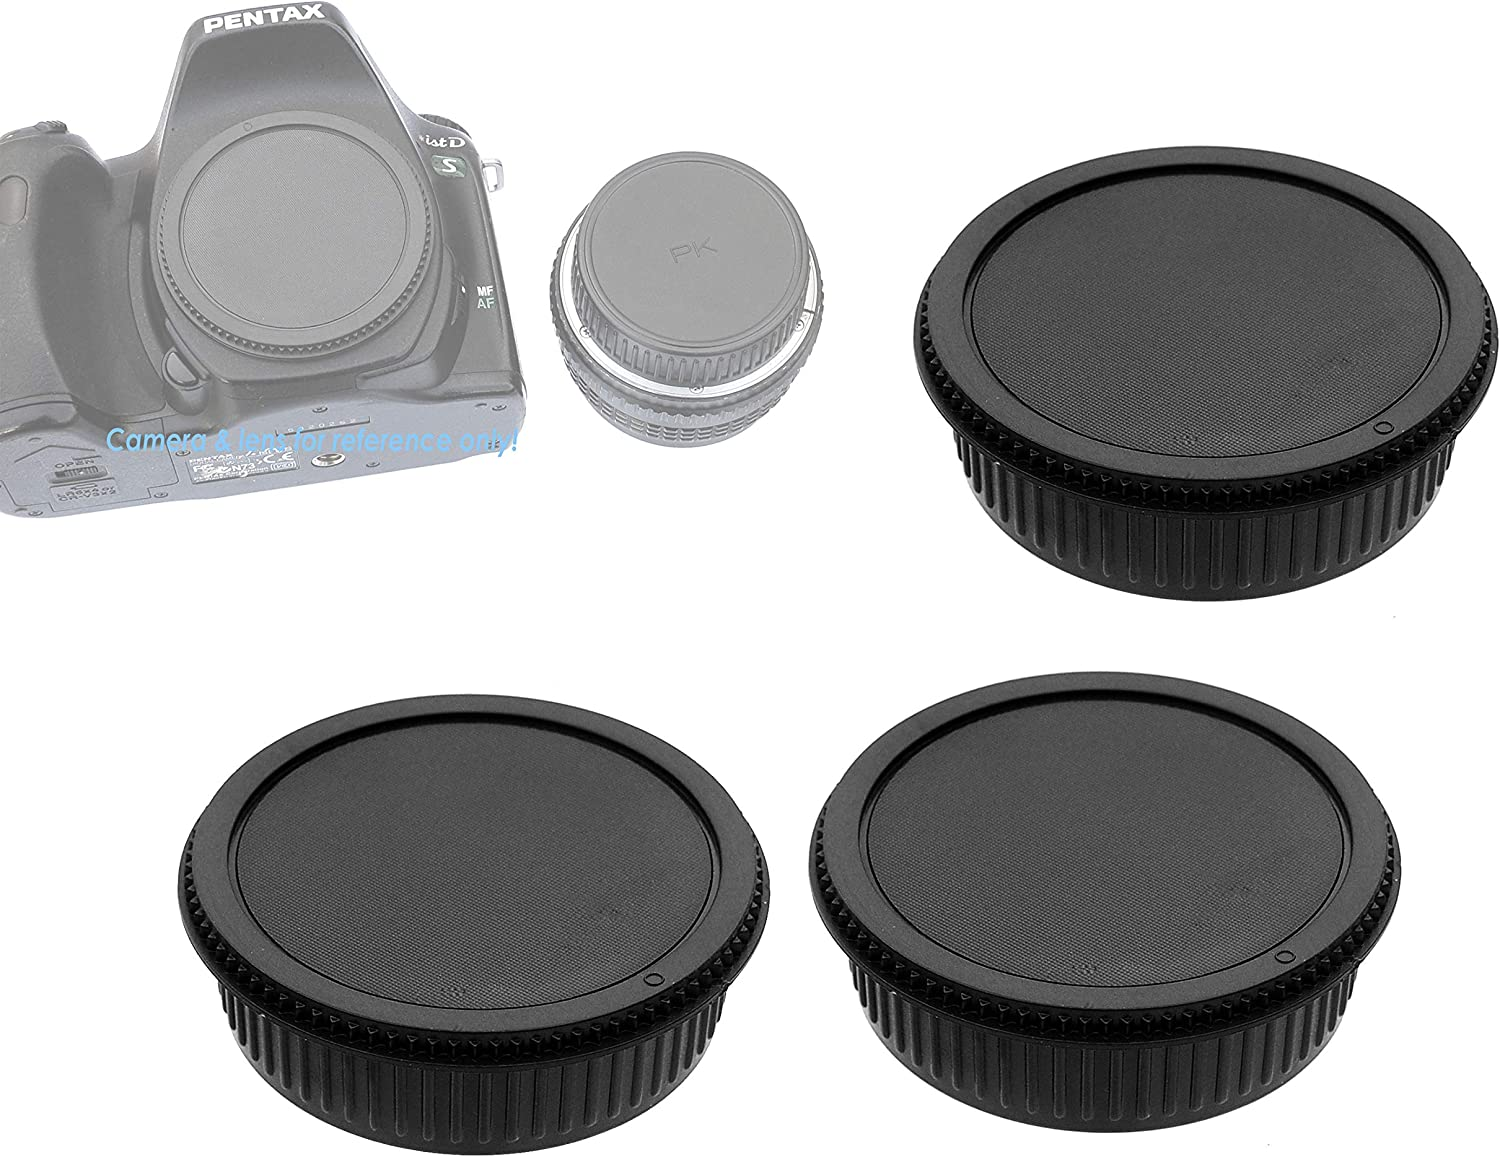 + Lens Cap 58mm Microfiber Cloth Lens Cap Center Pinch for Pentax K-30